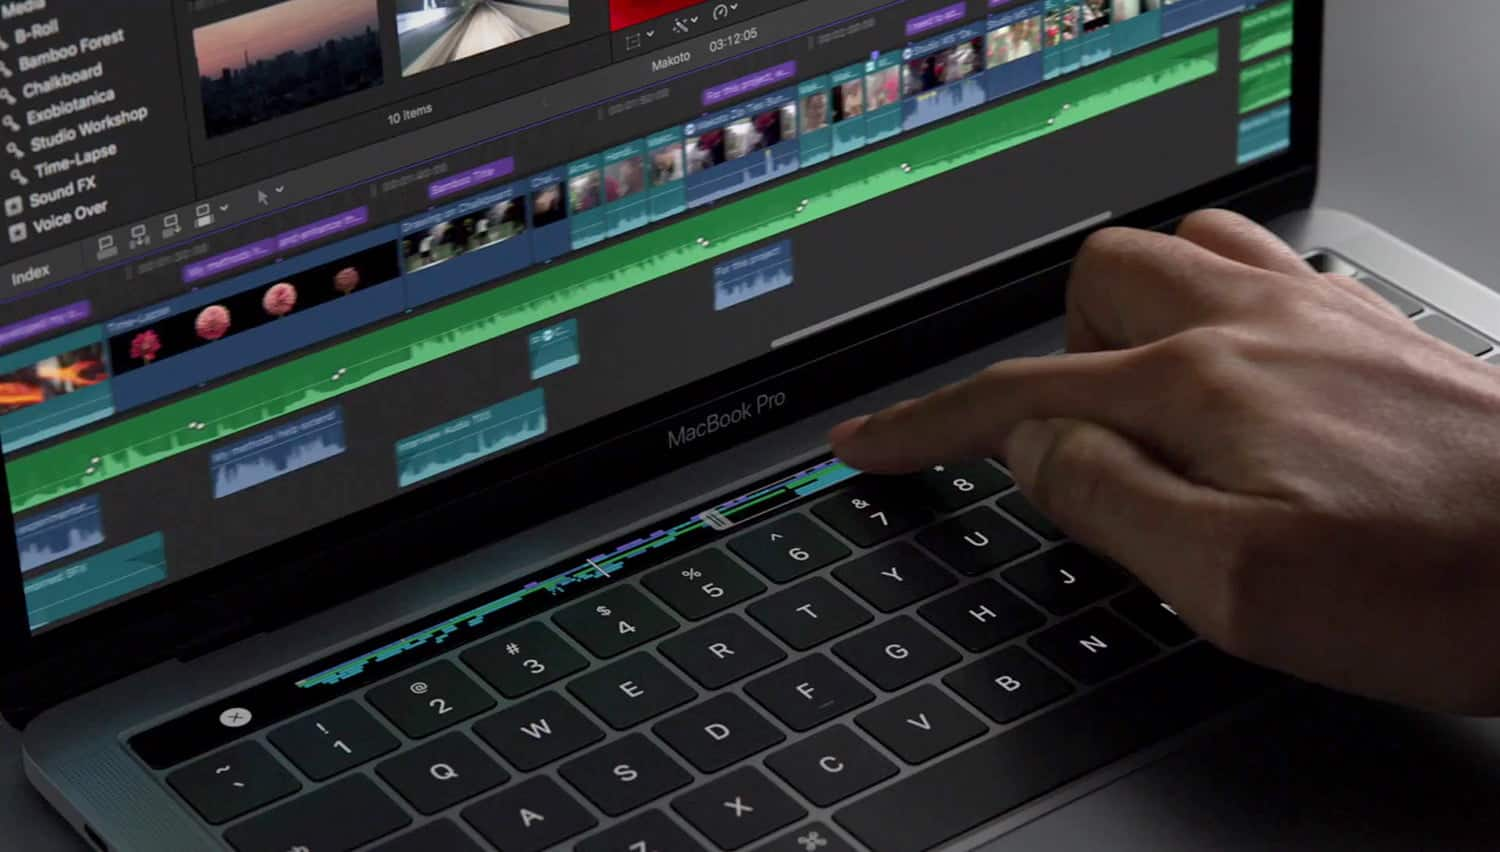 Apple should consider killing the TouchBar